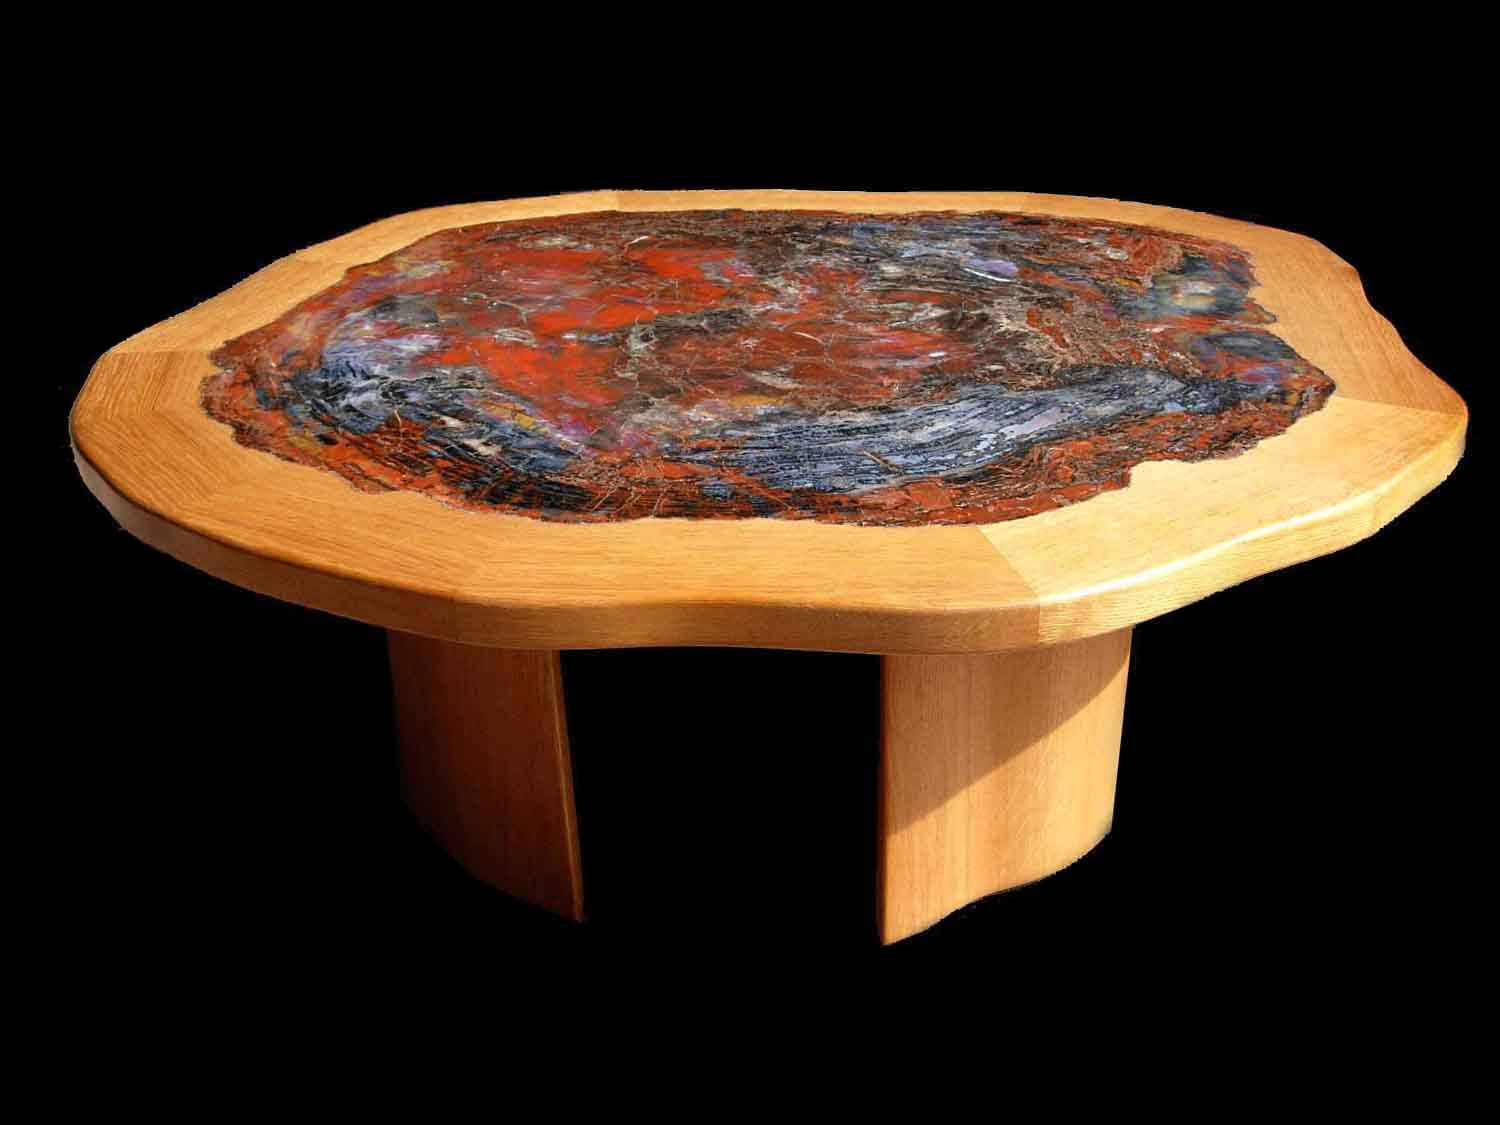 FINE QUALITY ARIZONA PETRIFIED WOOD TABLES  PETRIFIED WOOD SLABS AND  PETRIFIED WOOD FURNITURE FOR SALE. FINE QUALITY ARIZONA PETRIFIED WOOD TABLES  PETRIFIED WOOD SLABS